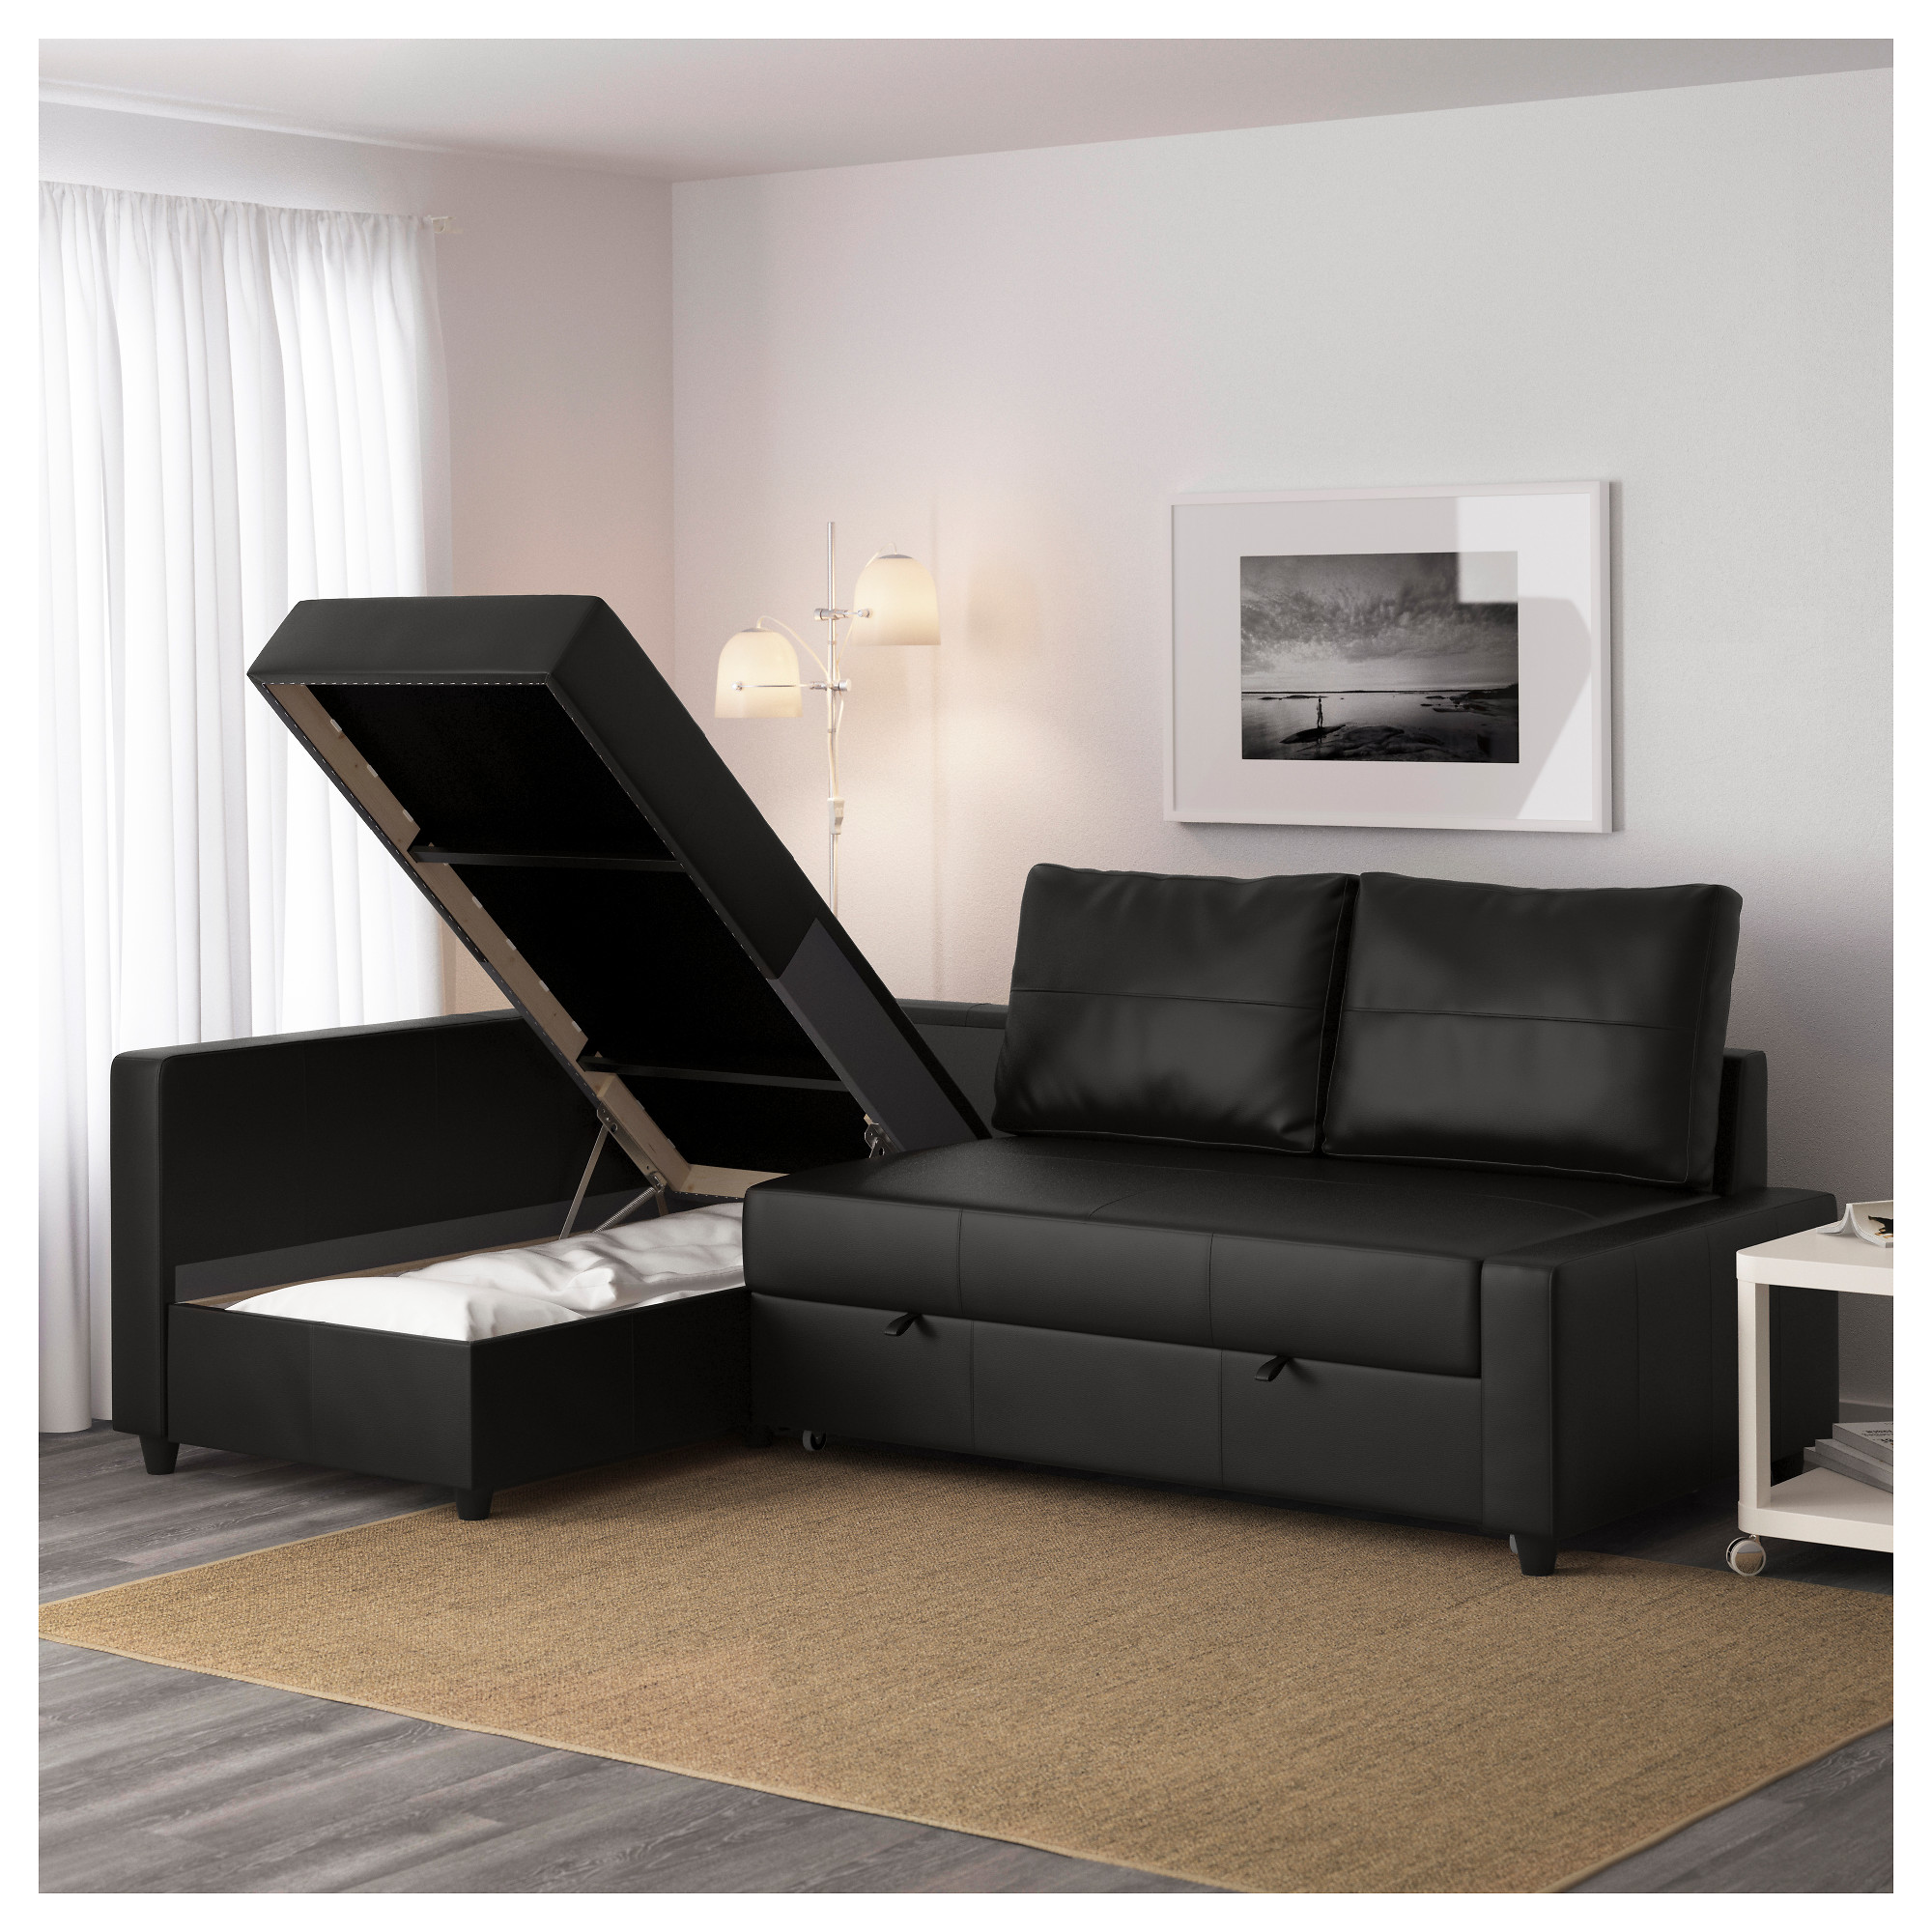 Couch Bed With Storage Part - 38: FRIHETEN Corner Sofa-bed With Storage - Skiftebo Dark Gray - IKEA